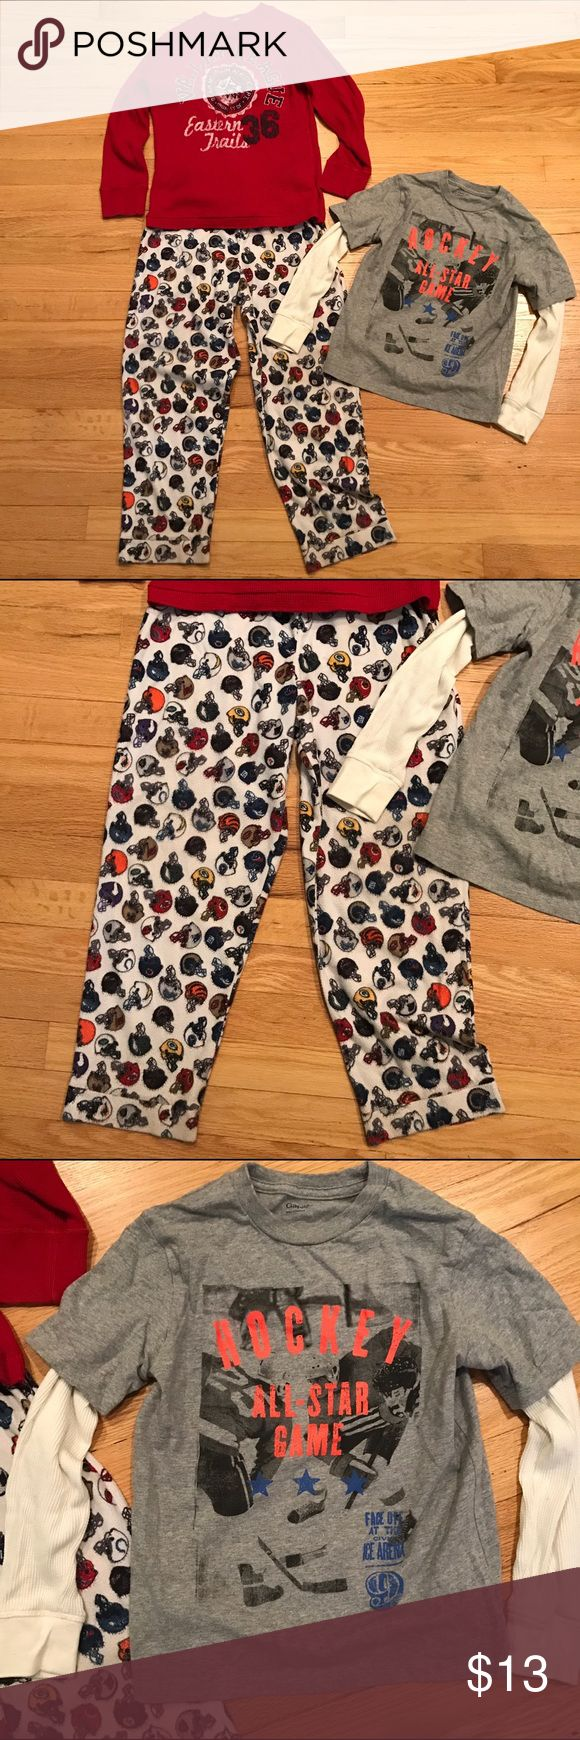 LOT OF THREE Boys Shirts Pajama Pants Size 6-8 Reasonable offers considered 🛍 Bundle 2 or more items and save! 🎁 Bundle 5 items and I will reimburse the shipping fee 🎉. Help your little man keep warm! Includes: 1) NFL team football helmet pajama pants size 7; 2) Gap Kids Long Thermal Sleeves Hockey All Star Game shirt size 6-7; 3) Children's Place red Thermal Valley League Trails shirt size medium 7/8. Preloved and in great condition. Children's Place Other